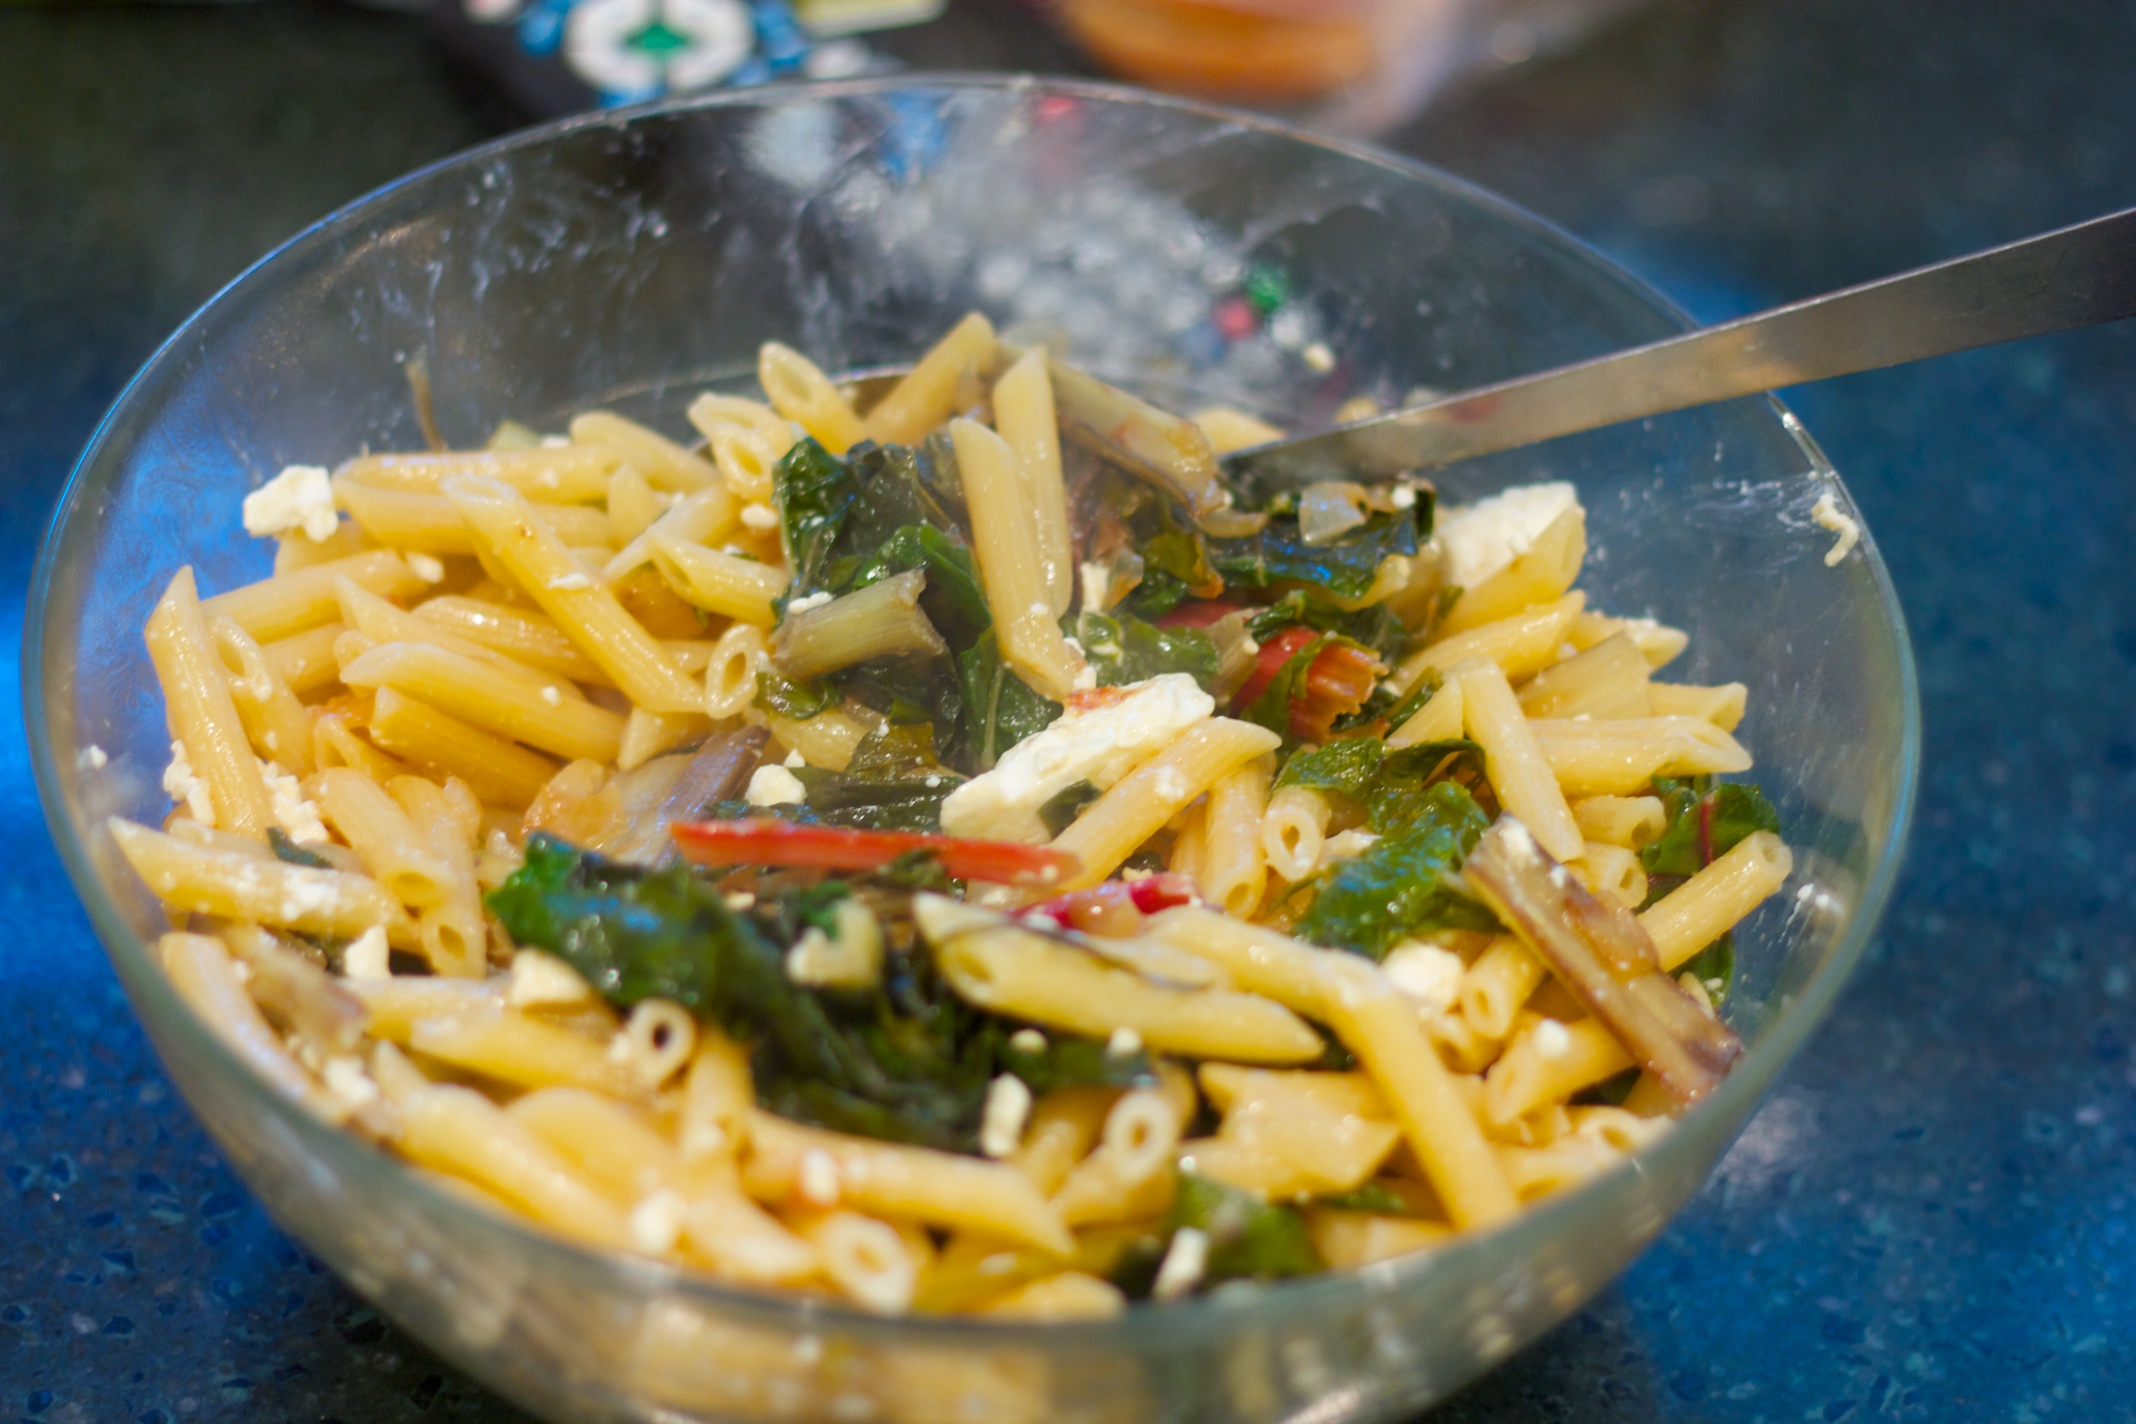 Meatless Monday: Pasta With Greens and Feta